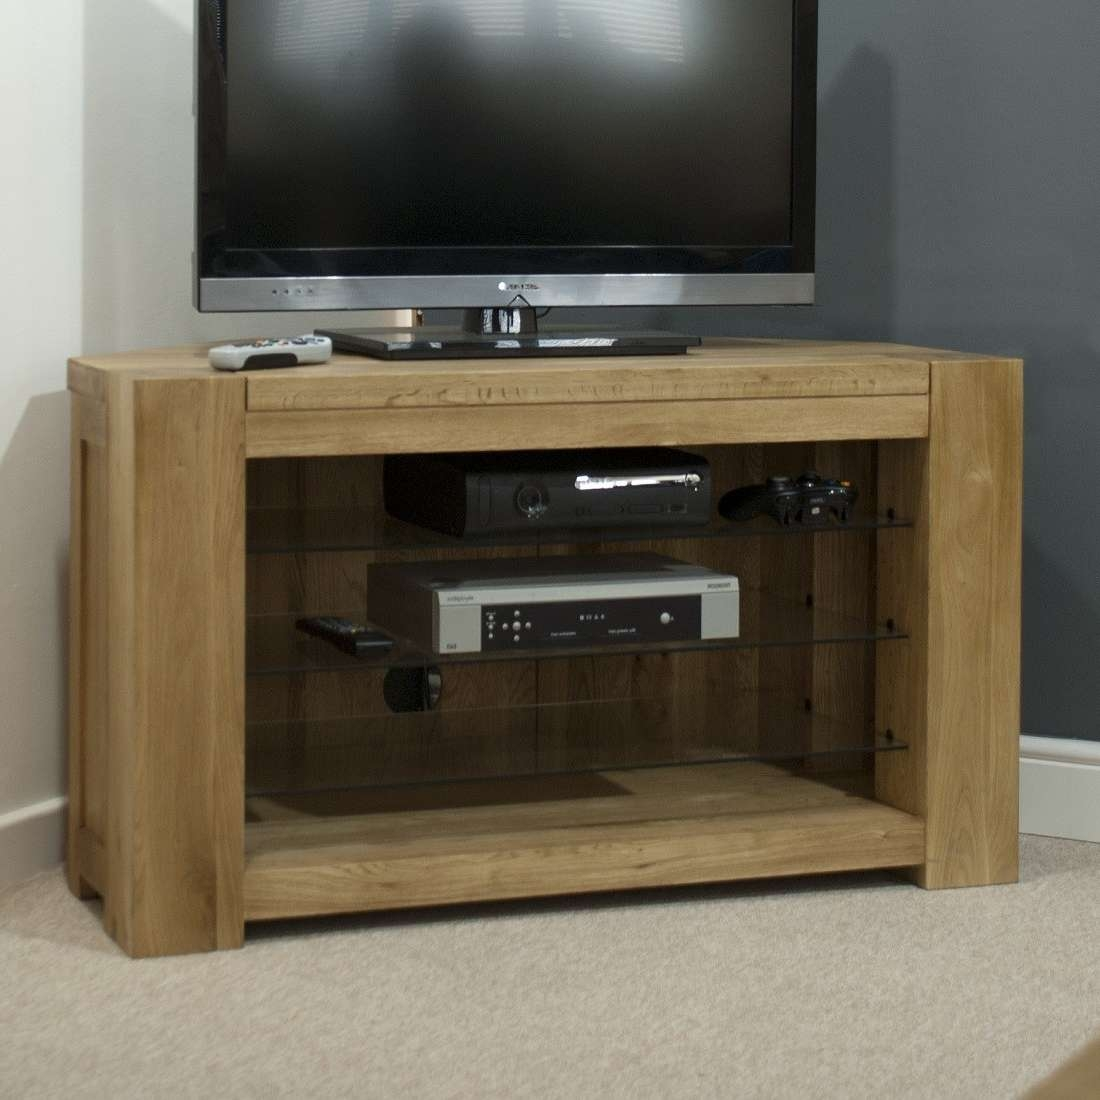 Tv Stands : Oak Tv Units Cabinets Furniture Uk Wooden Corner Solid For Wooden Tv Stands And Cabinets (View 15 of 15)